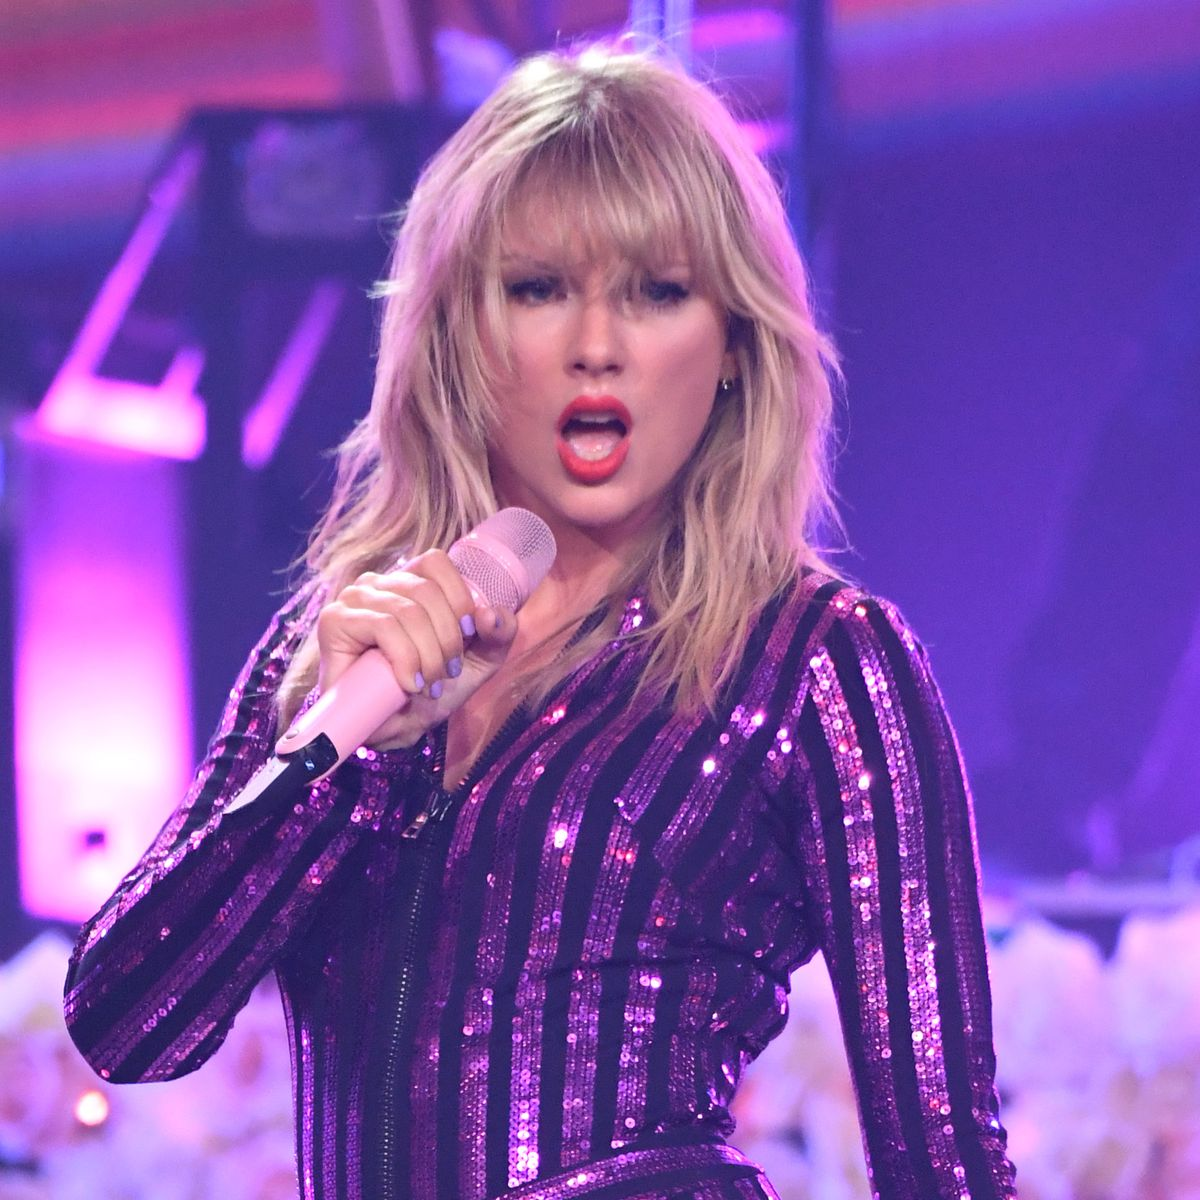 Drunk Taylor Swift Looks Like A Lot Of Fun On Instagram